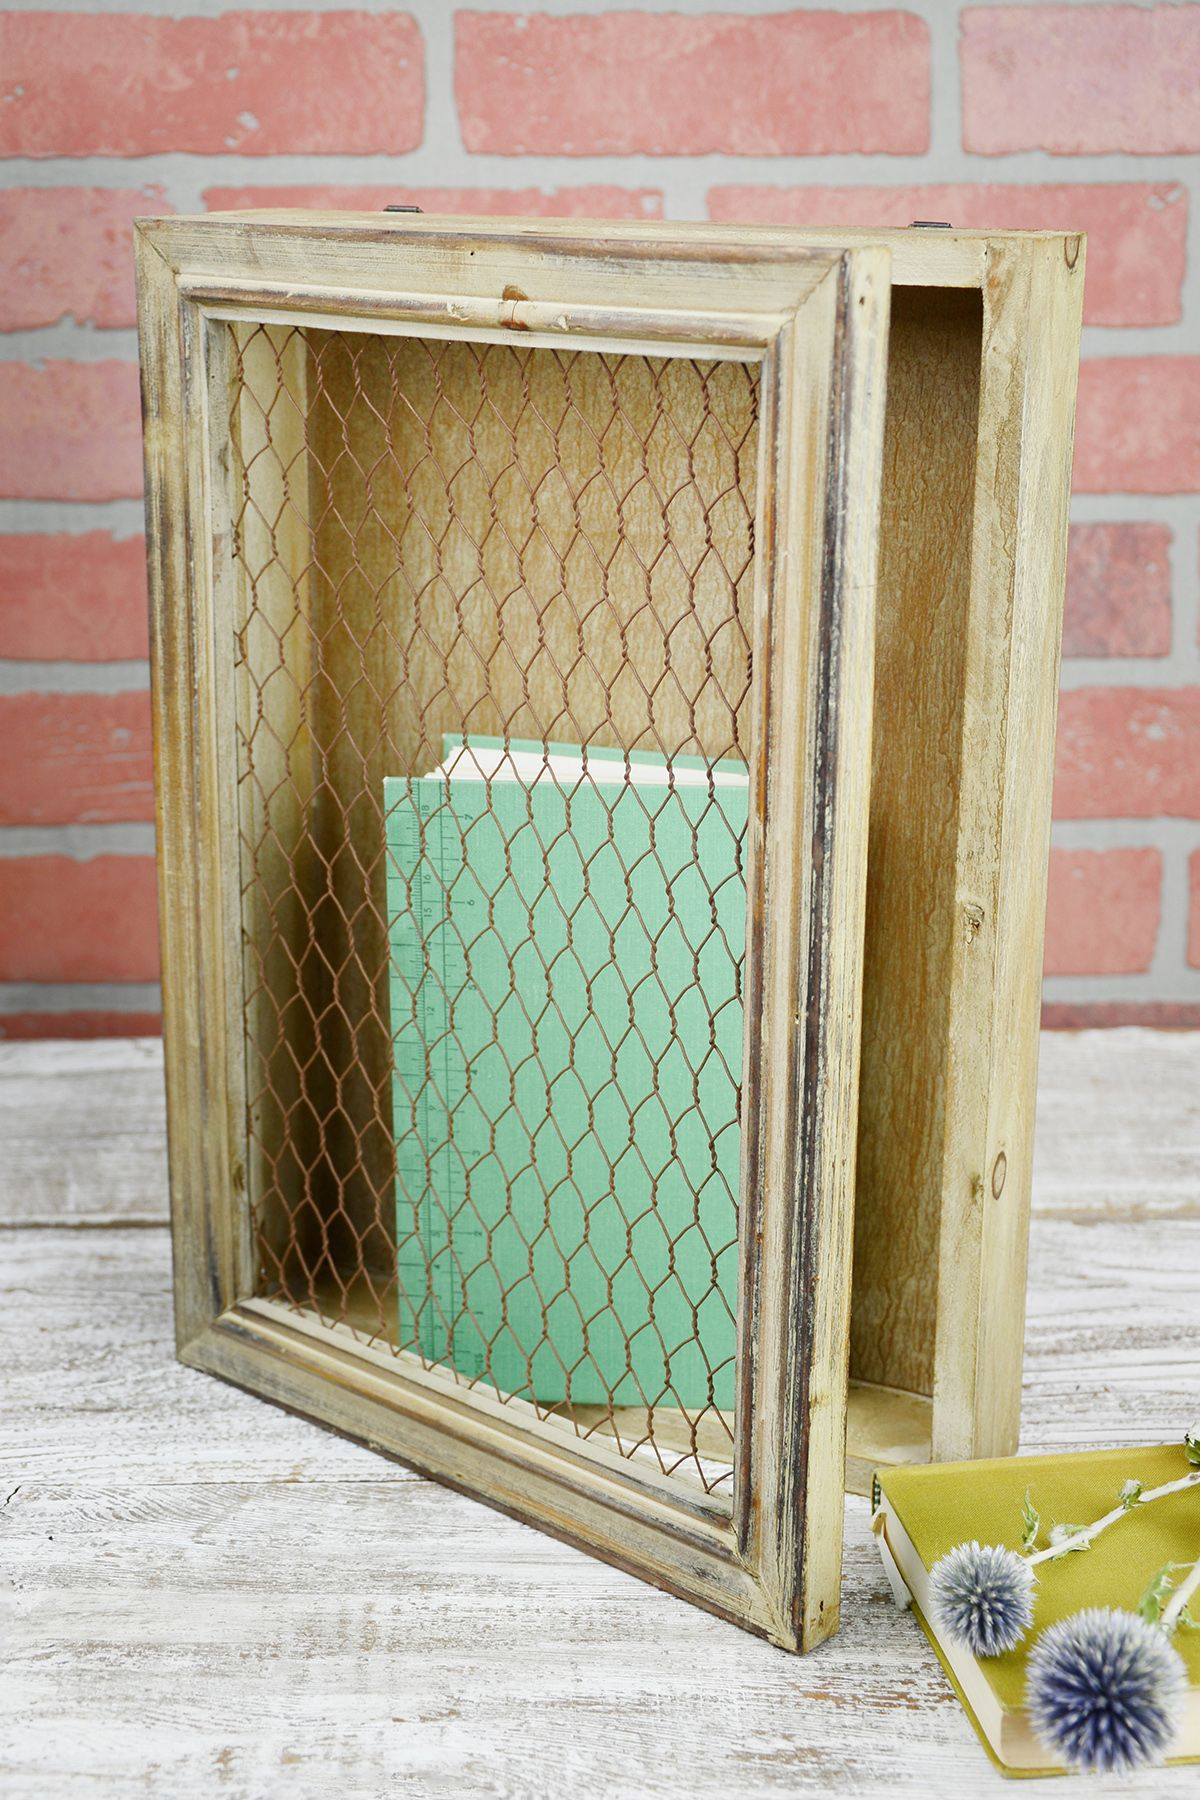 Rustic Wood Chicken Wire Wall Decor, 10x14, Hinged | Pinterest